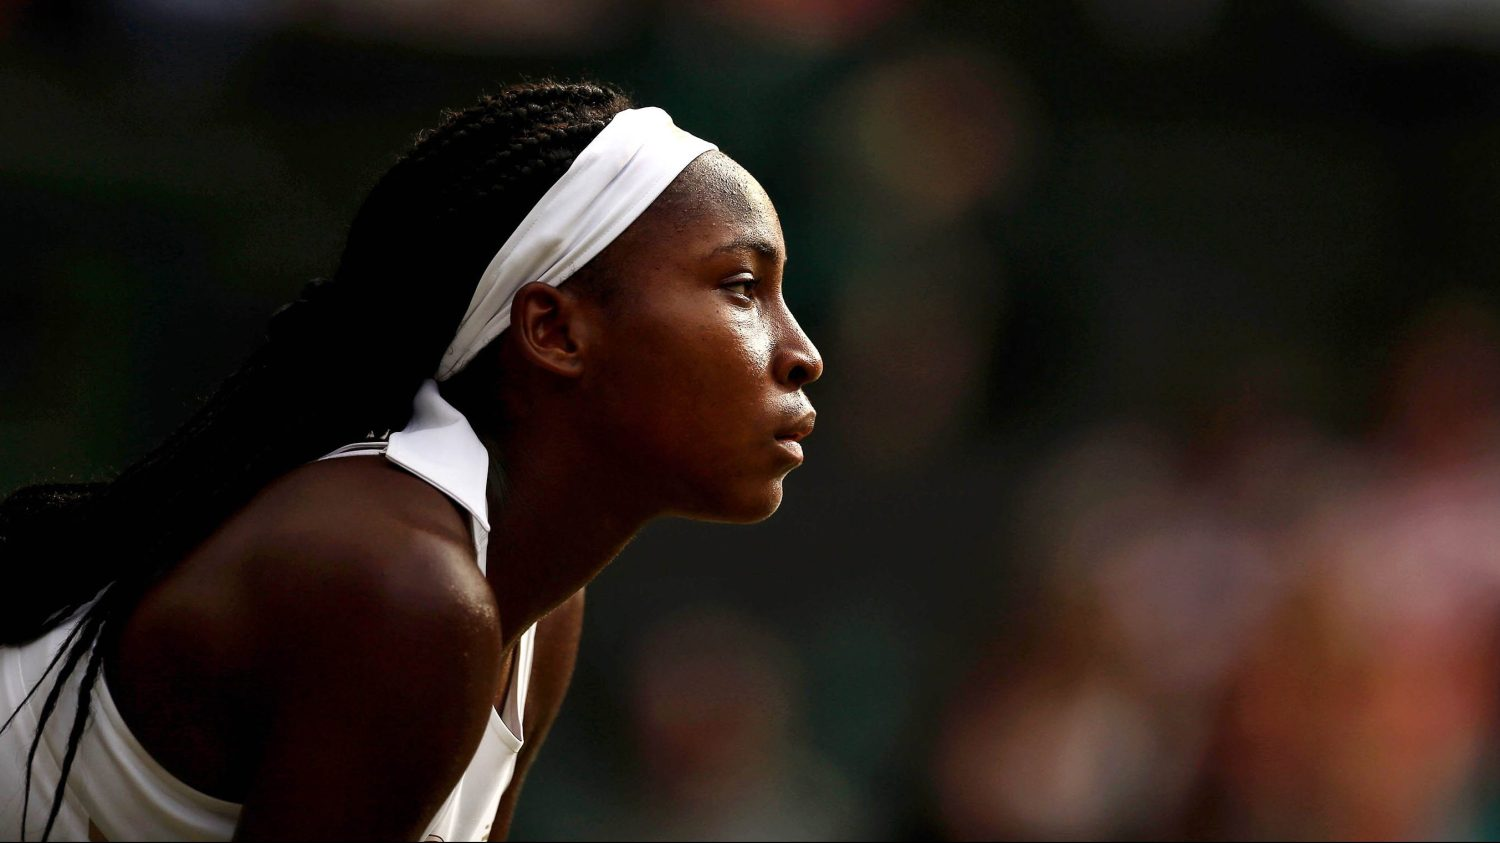 Coco Gauff: The girl who would be GOAT